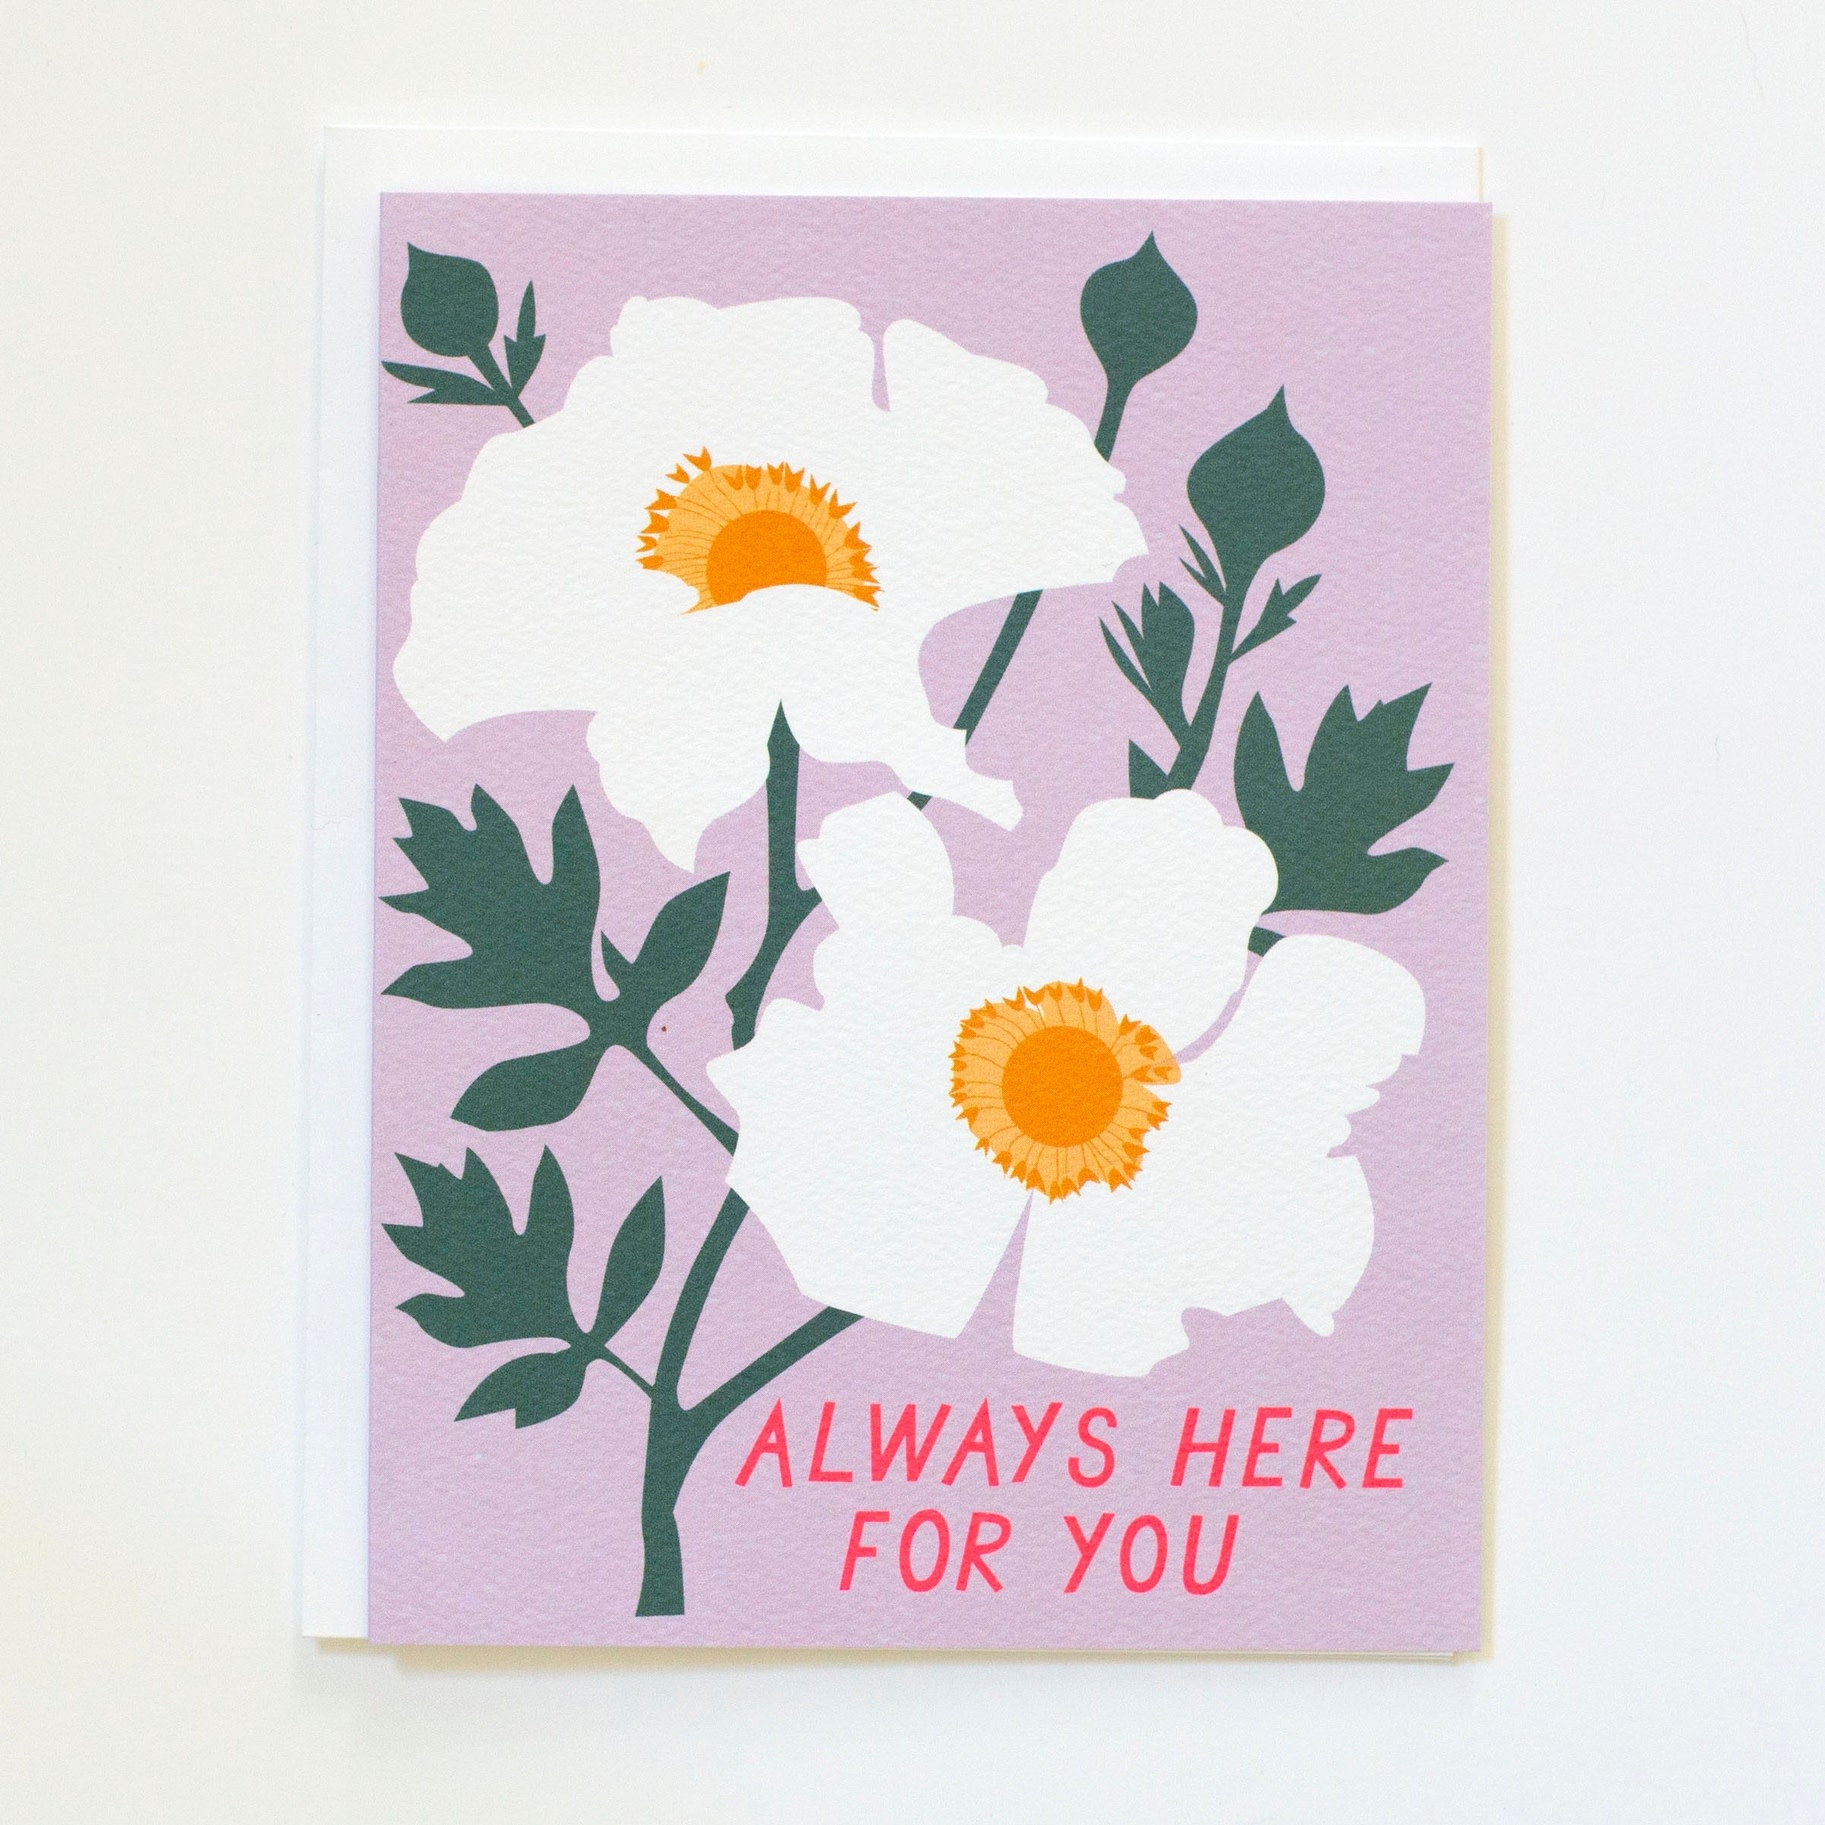 Banquet Atelier and Workshop - BAW Always Hear for You Floral Card